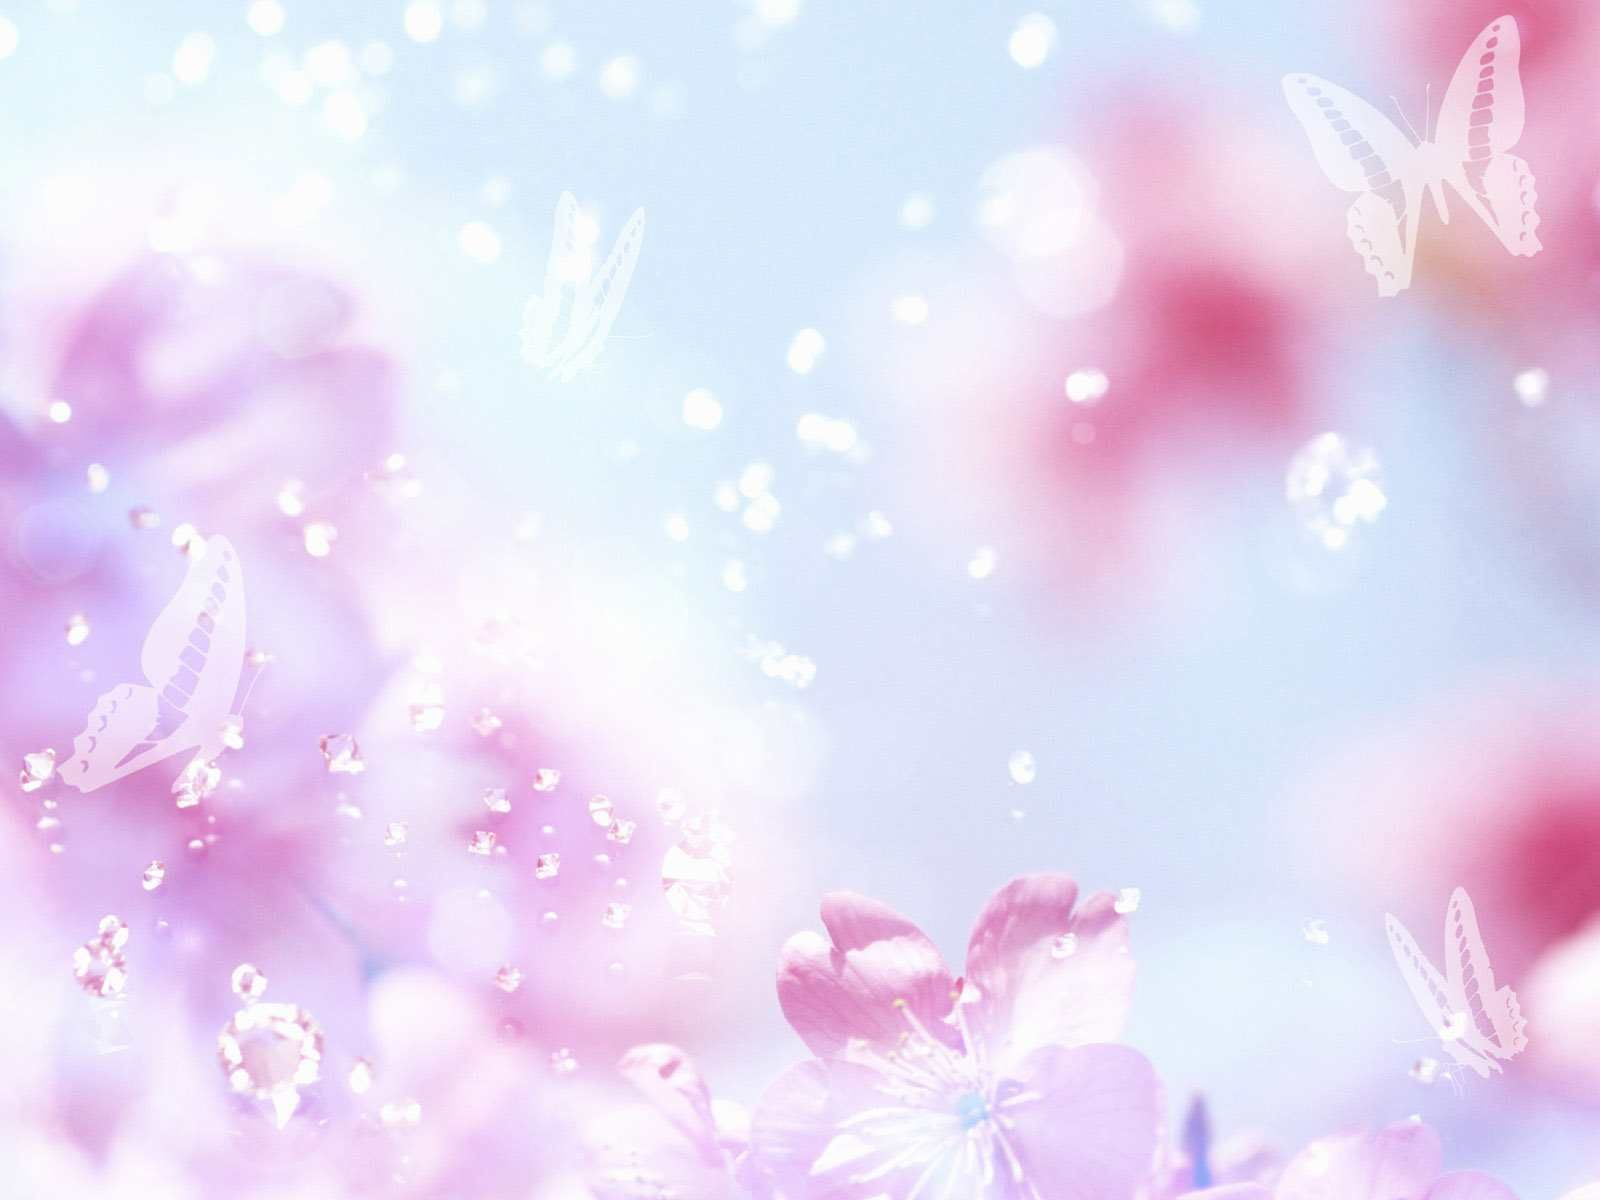 Hd Wallpapers Pulse: Beautiful Background HD Wallpapers Pulse